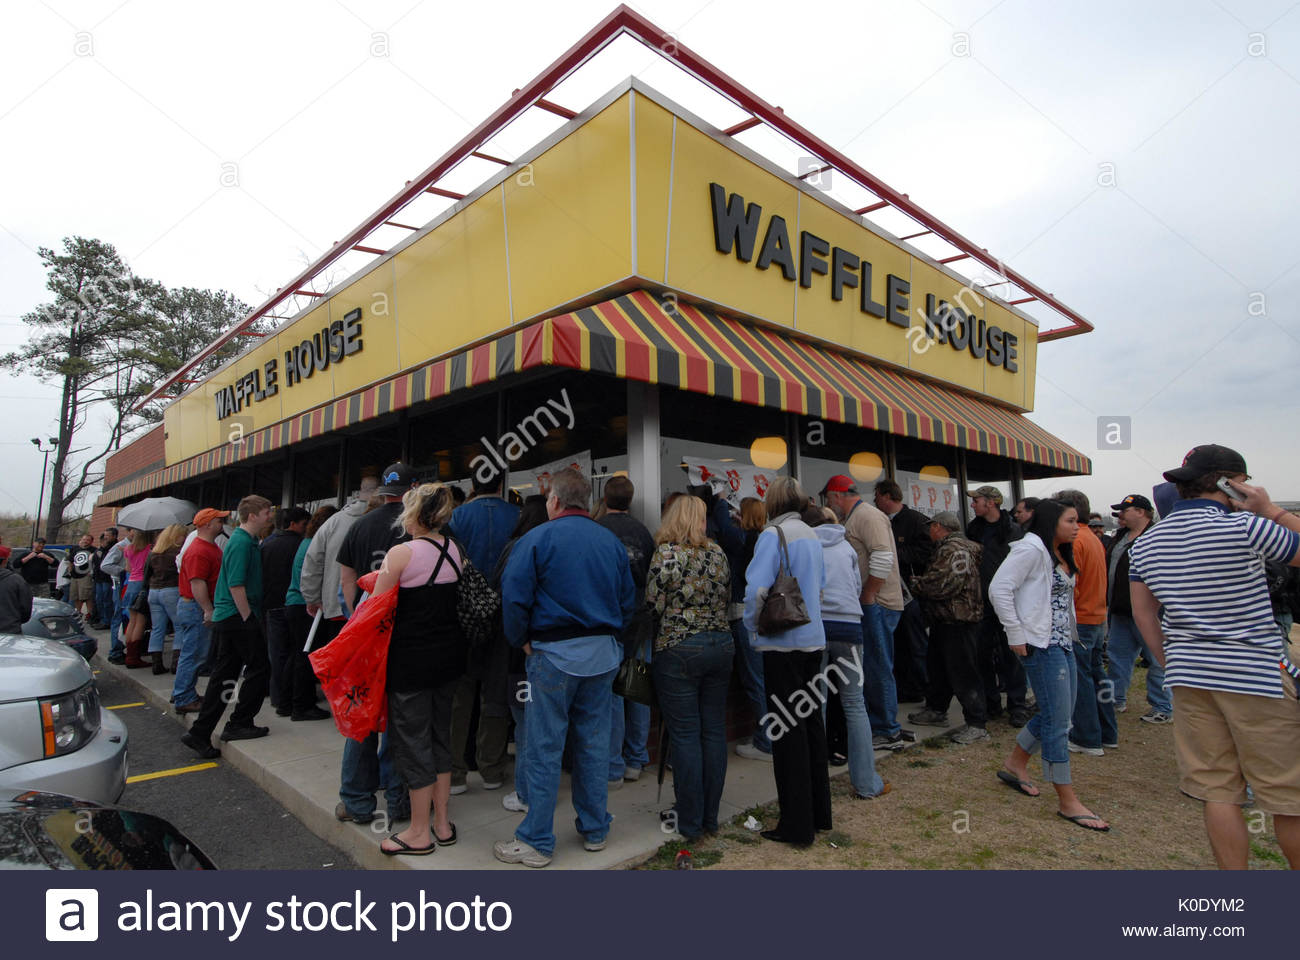 Kid Rock Caused A Different Kind Of Scene At The Waffle House In Atlanta, A  More Positive One Than Last Time He Was Connected With The Dessert Franchise .